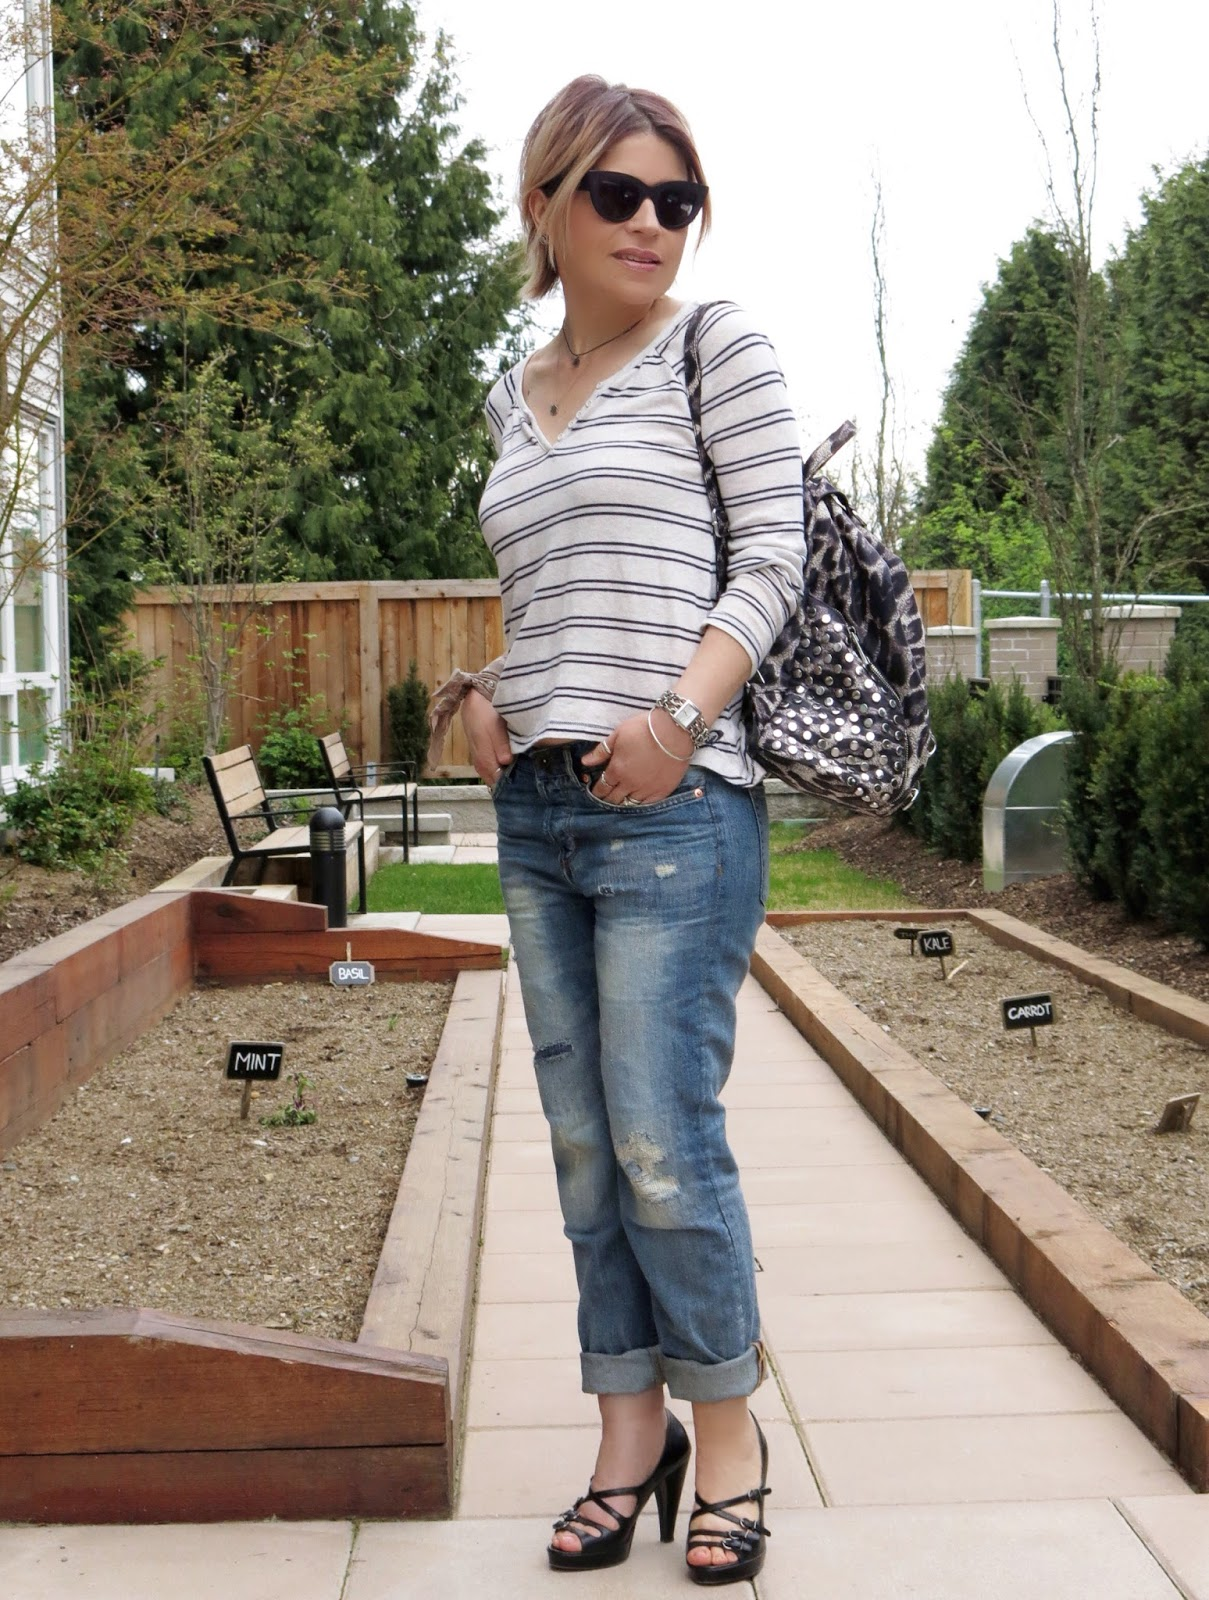 styling boyfriend jeans with a striped henley, strappy platform heels, and cat-eye sunglasses